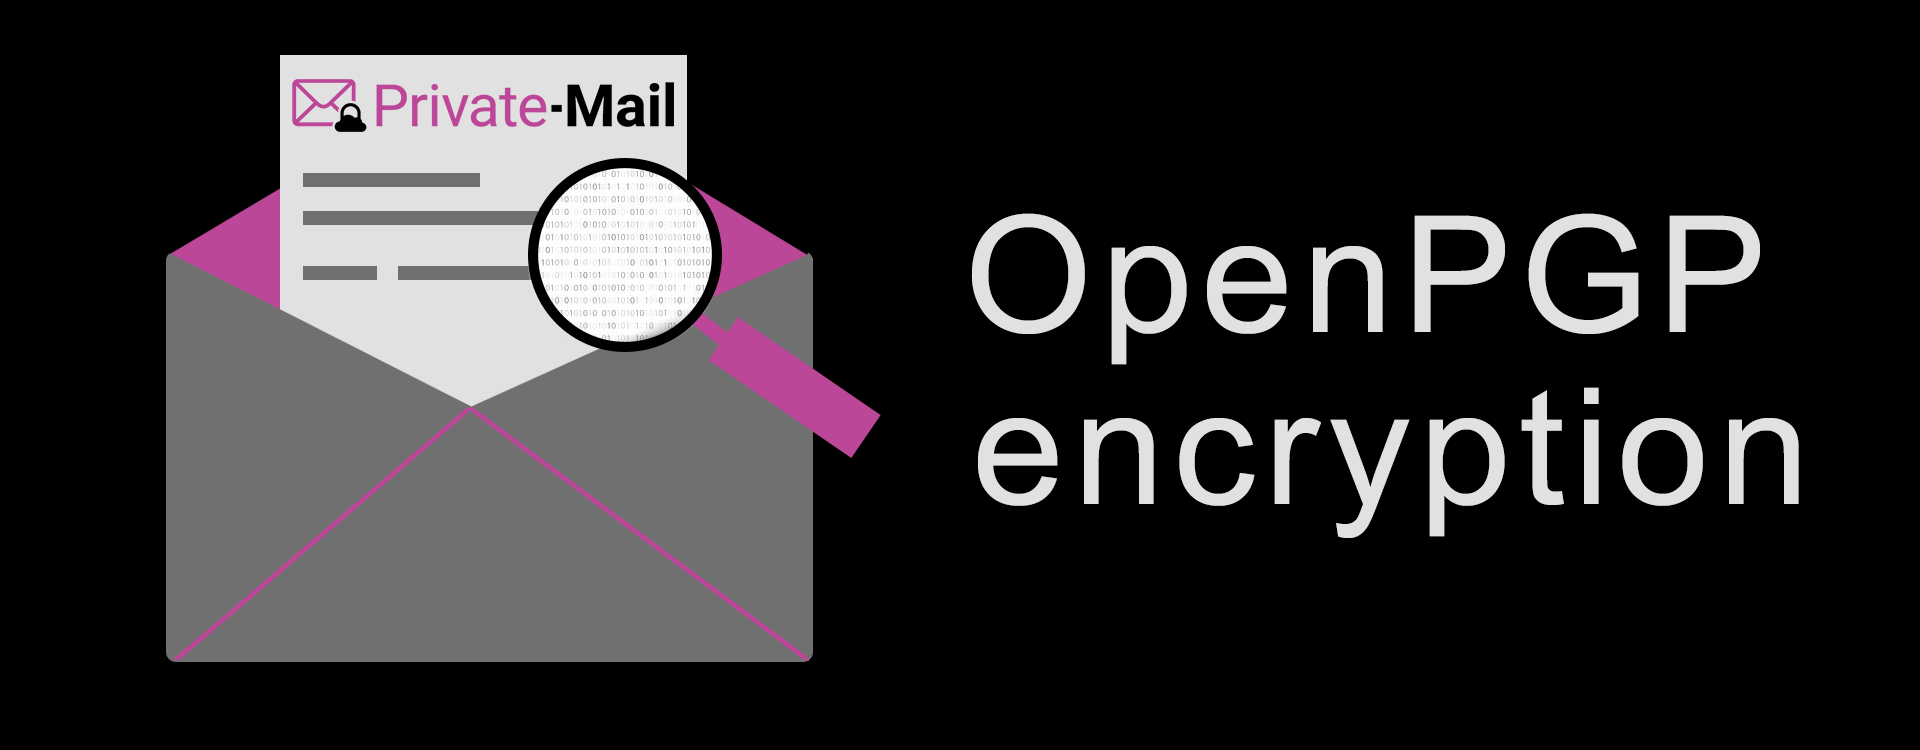 How to Generate an OpenPGP Key with PrivateMail or Kleopatra